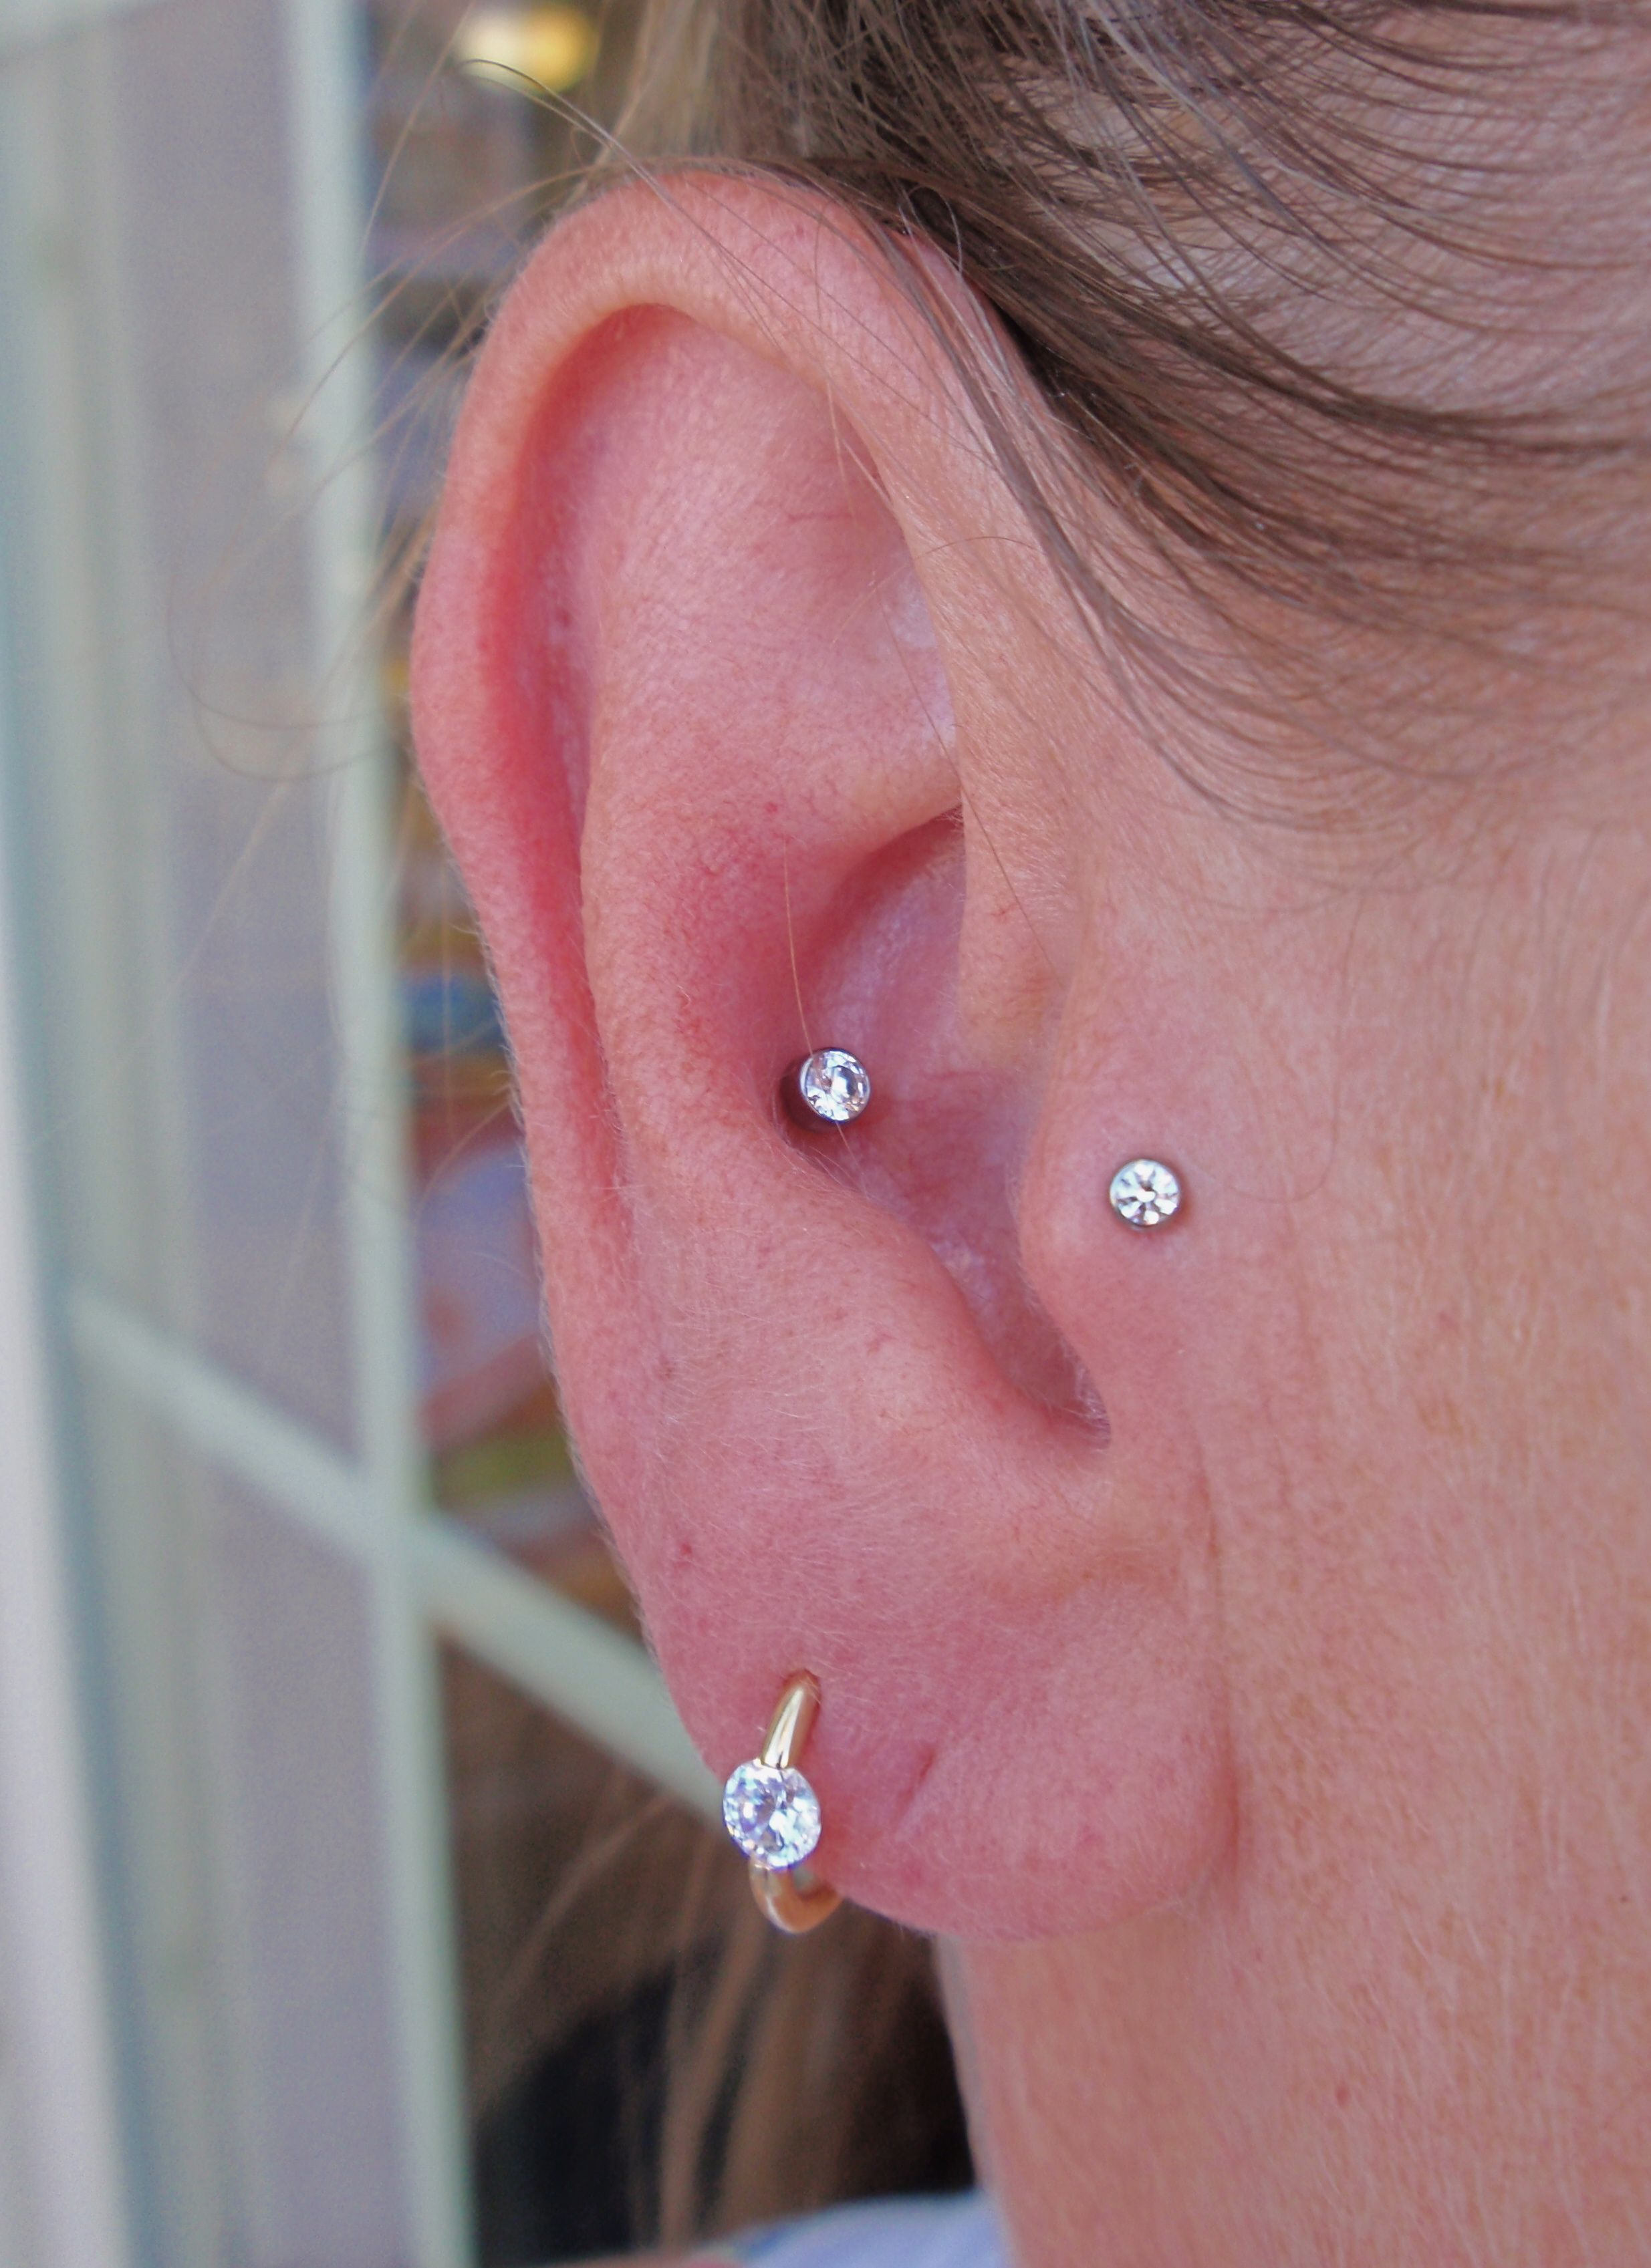 A Pic Of Two Piercings I Have The Tragus Closest To The Face Mine